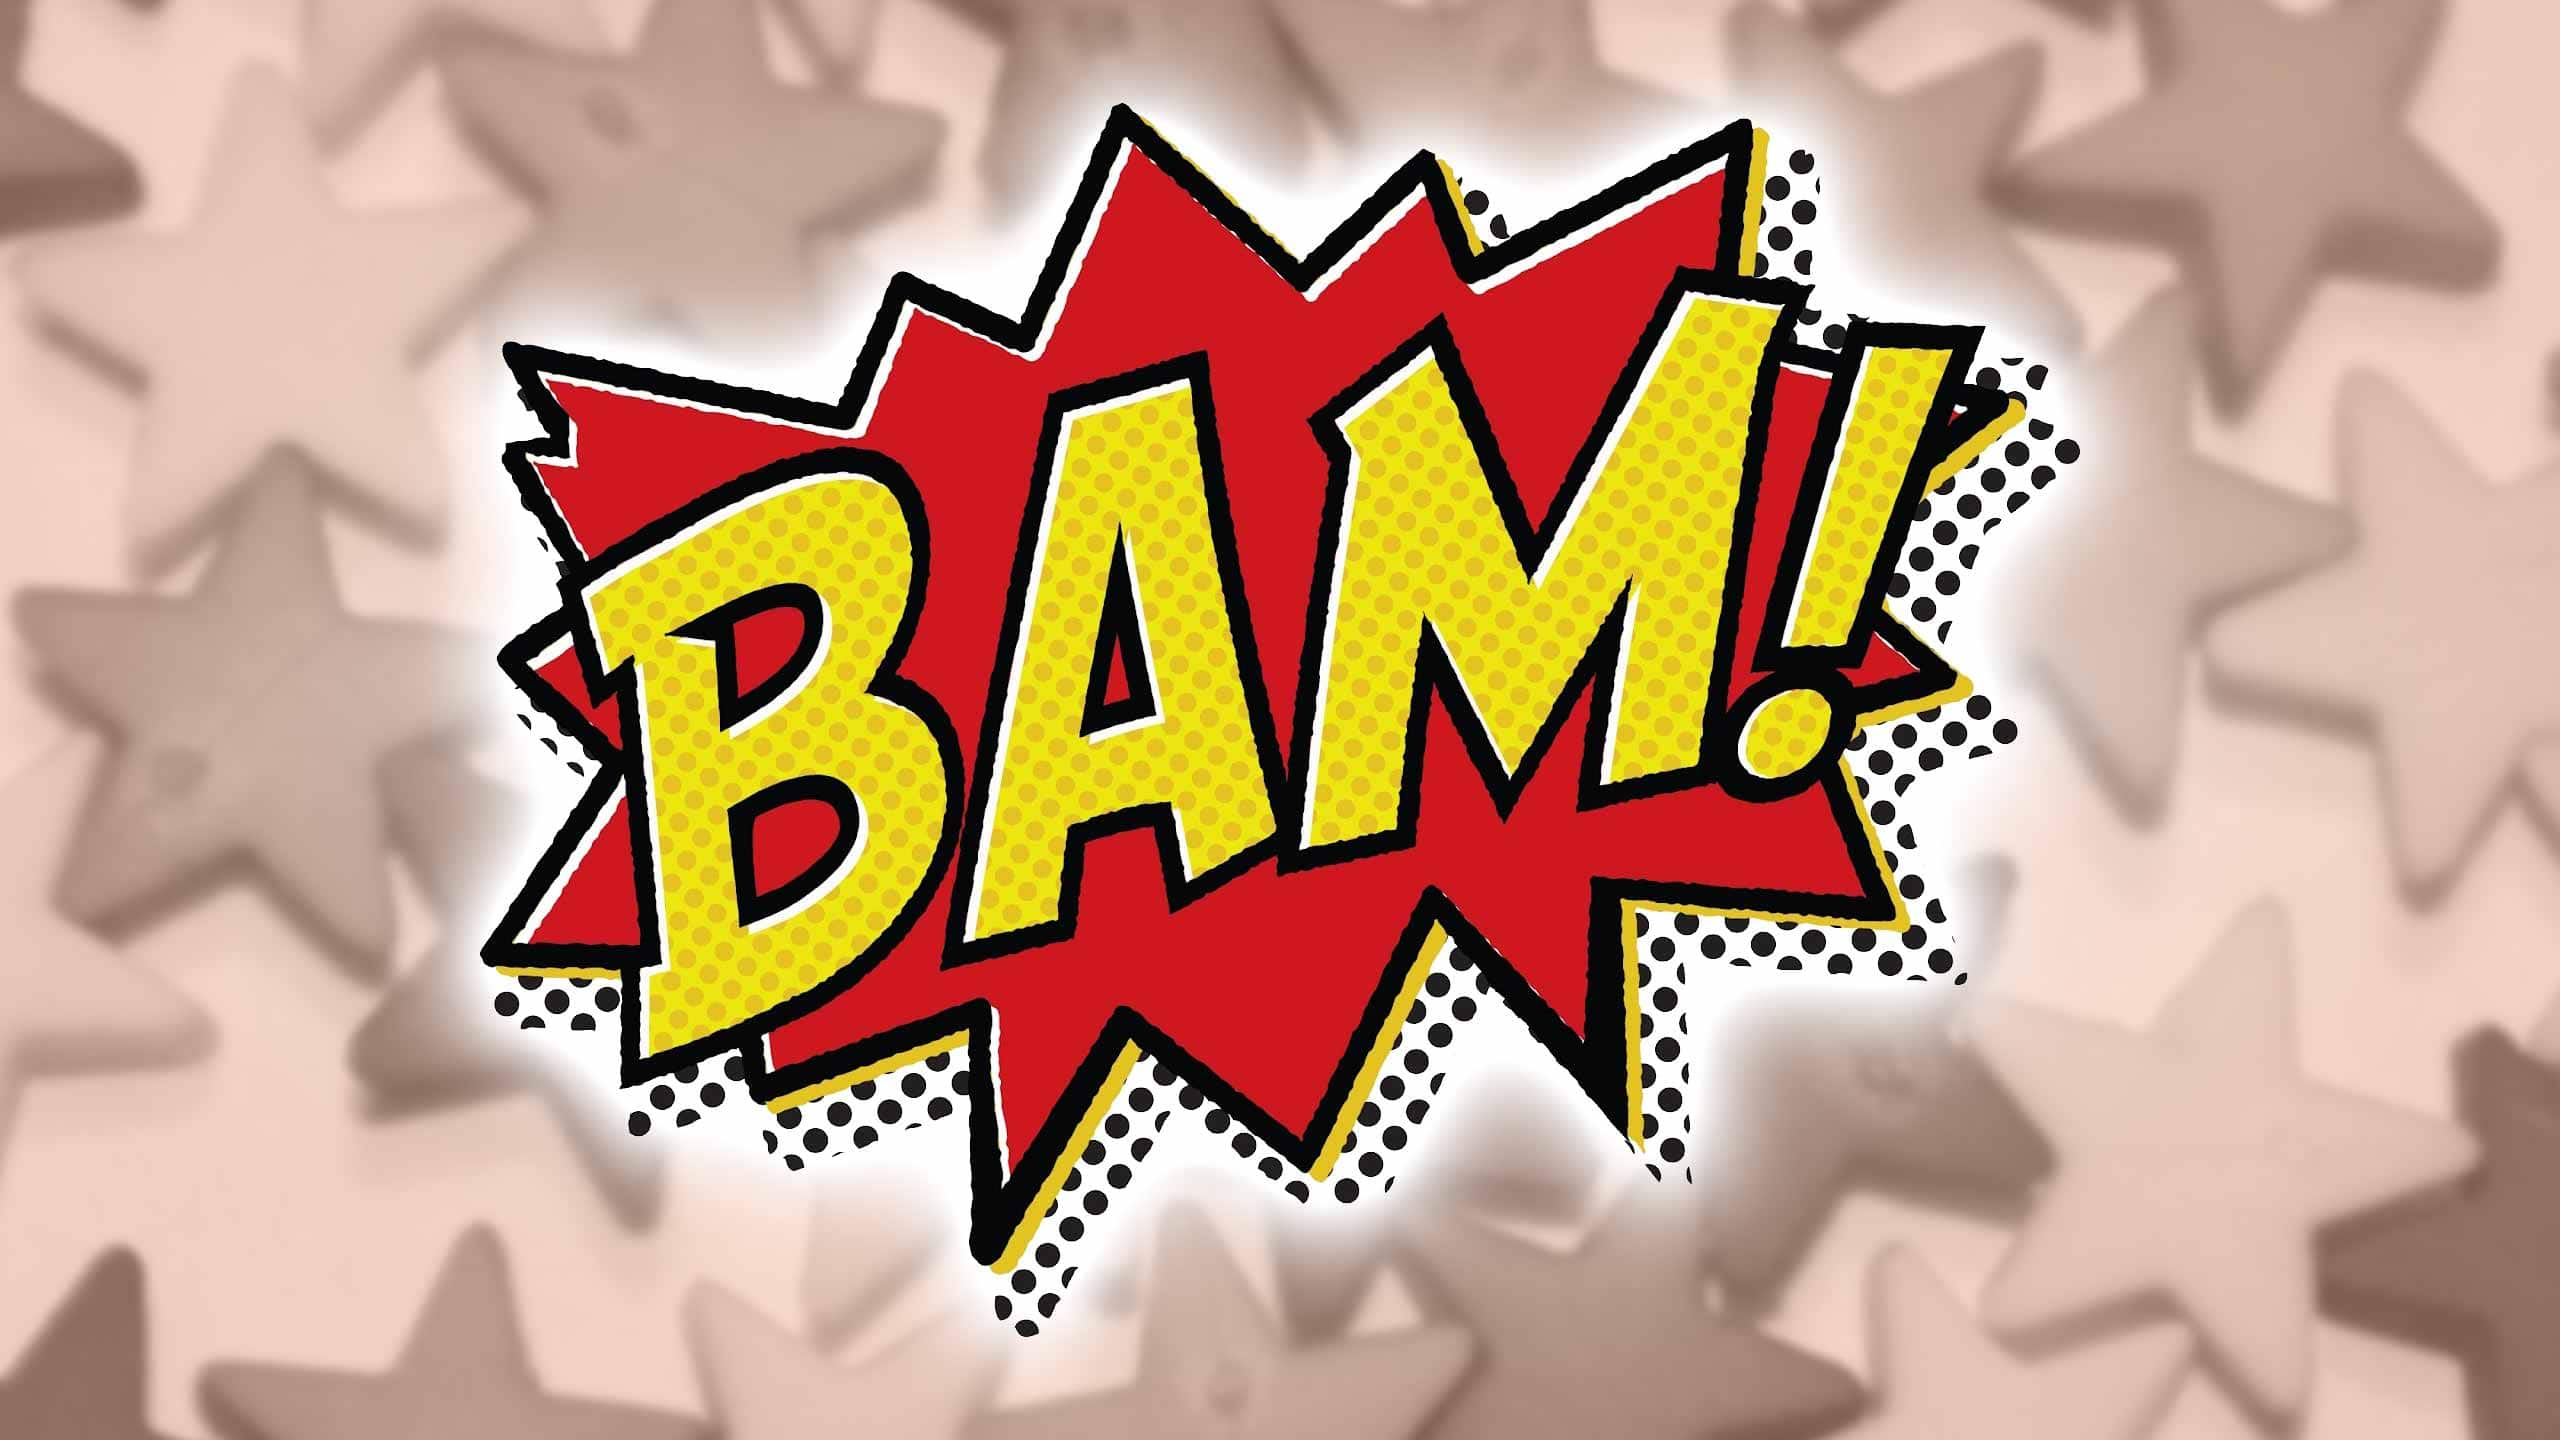 Cartoon BAM! graphic like those seen on the original 1960s Batman TV Series